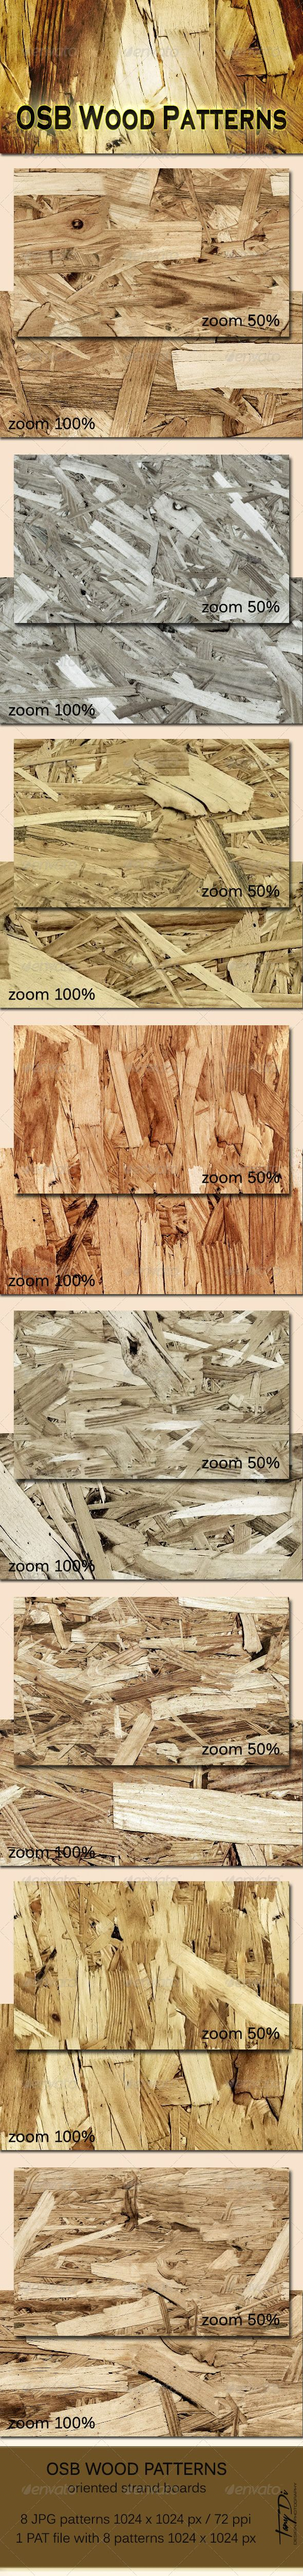 OSB Wood Patterns